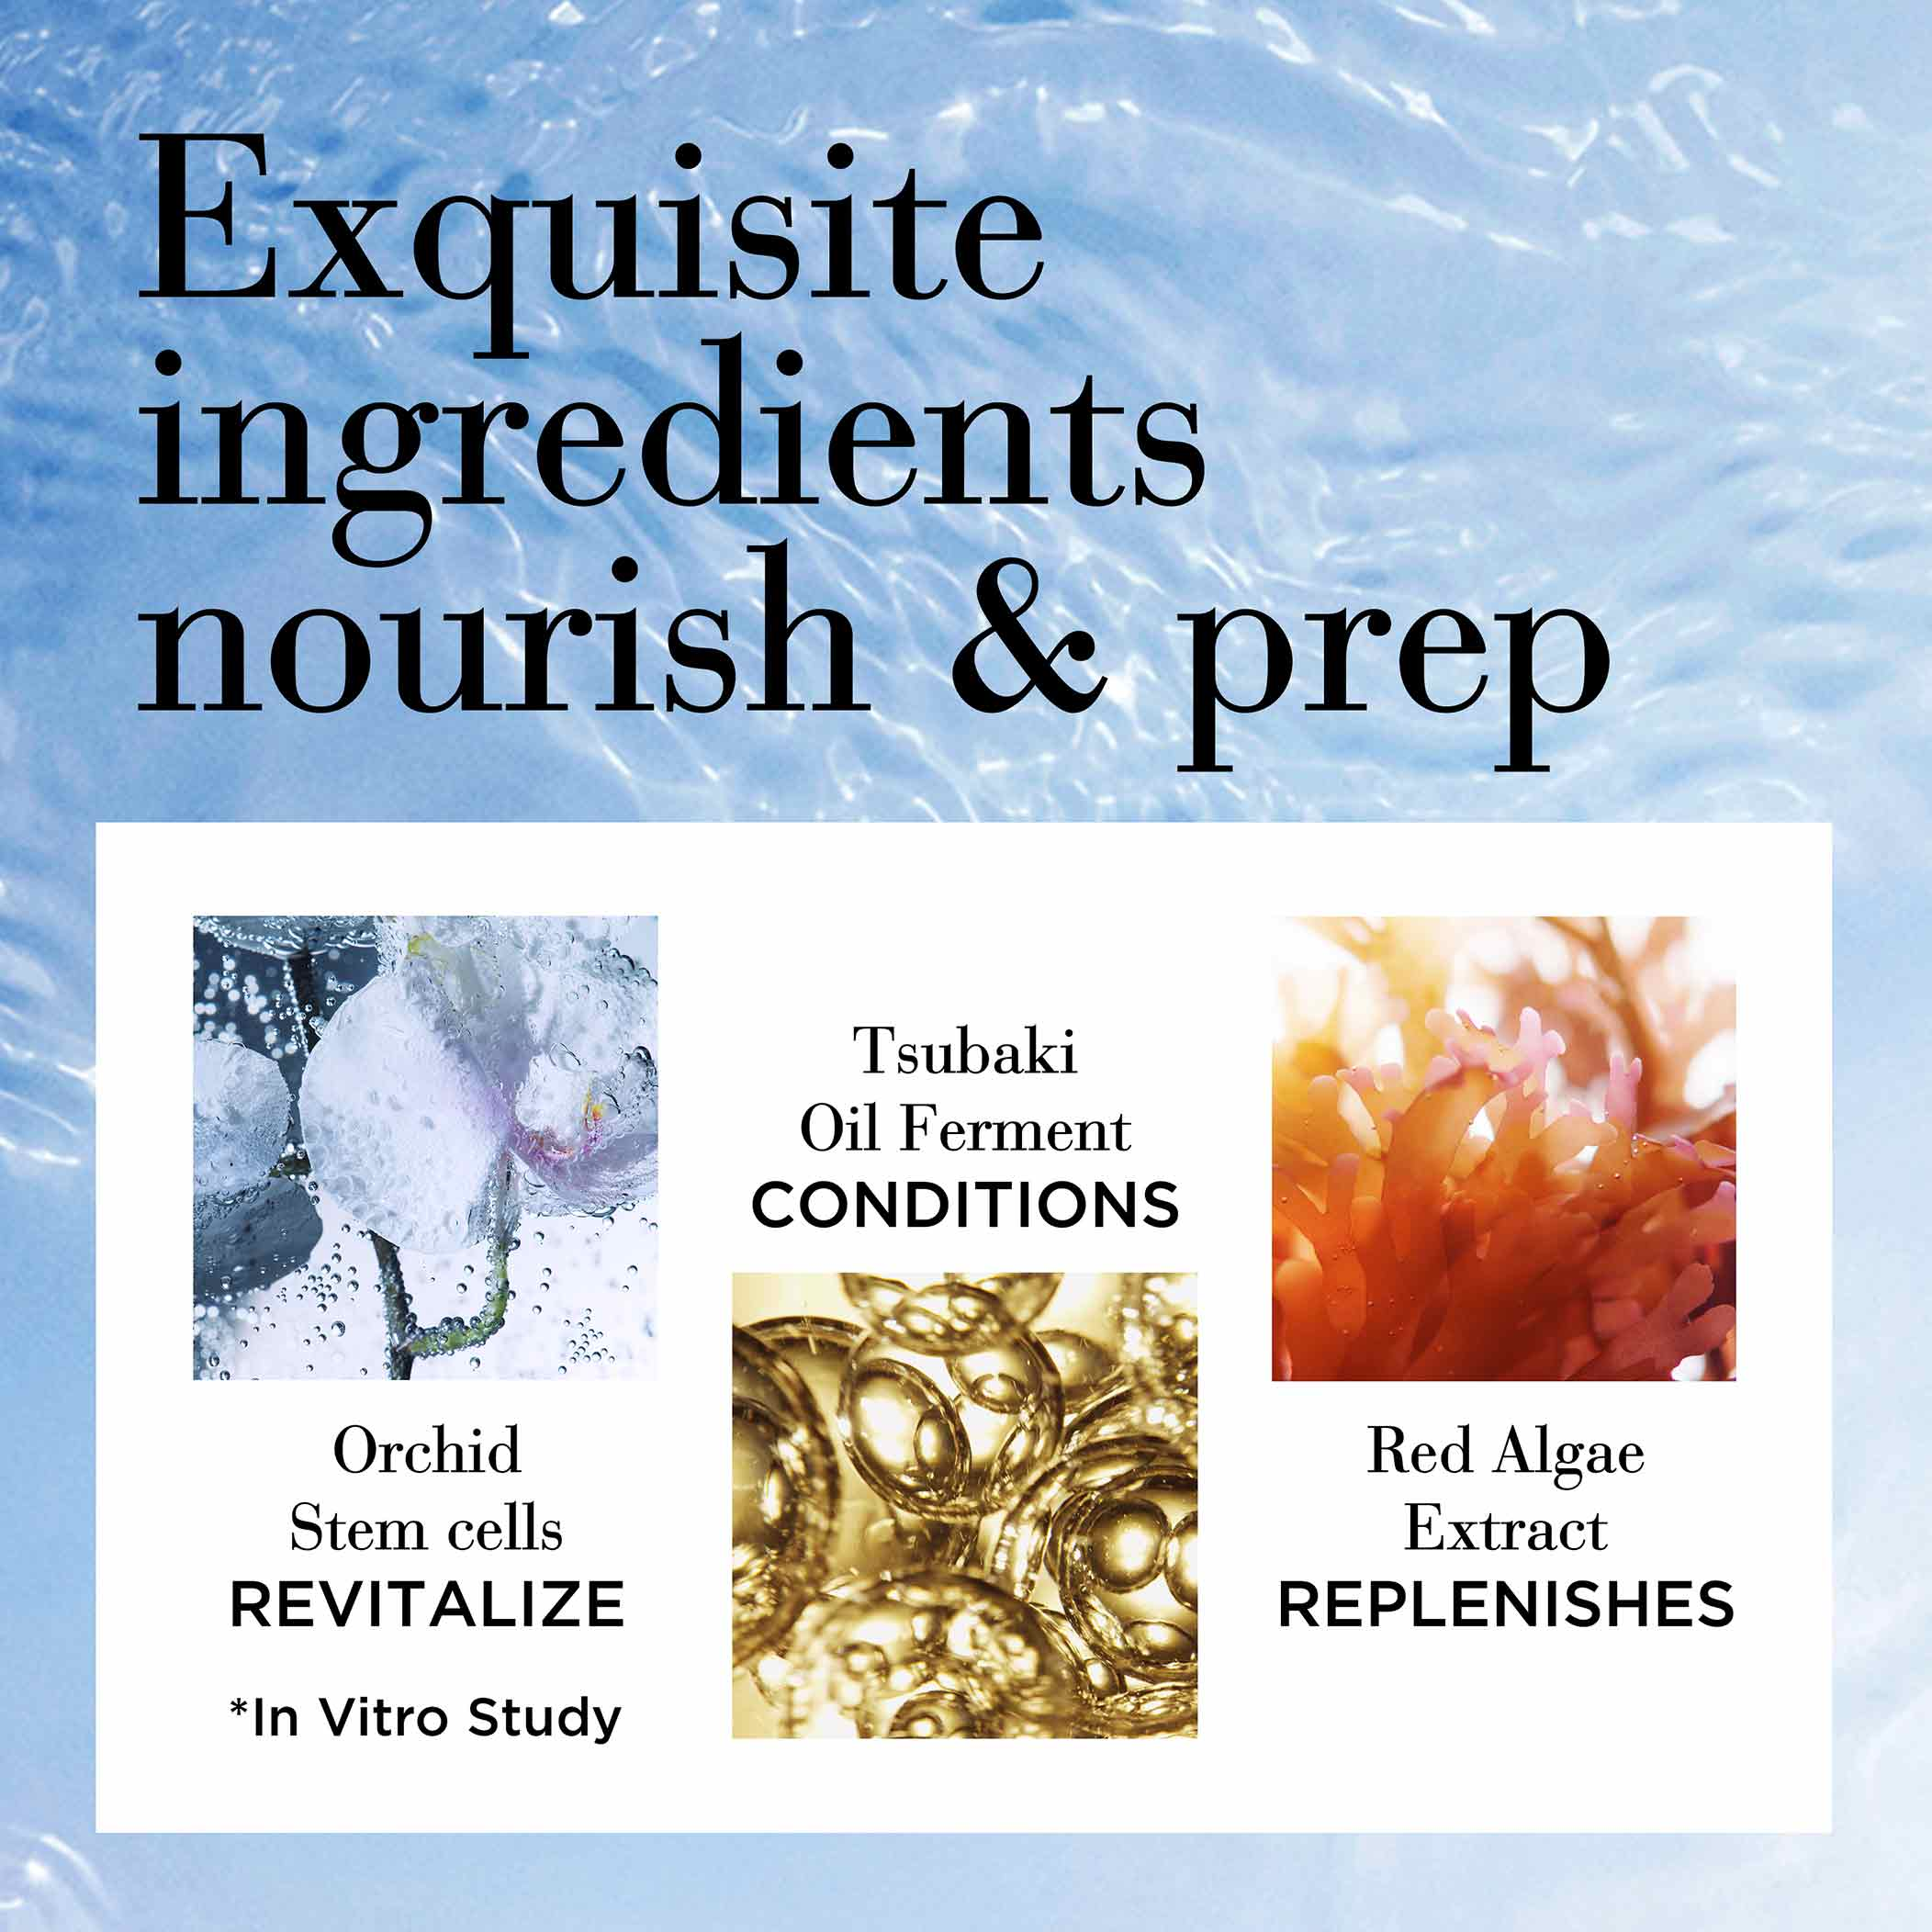 Exquisite ingredients that nourish and prep. Orchid Stem Cells revitalize, Tsubaki oil ferment conditions and red algae extract replenishes based in vitro study